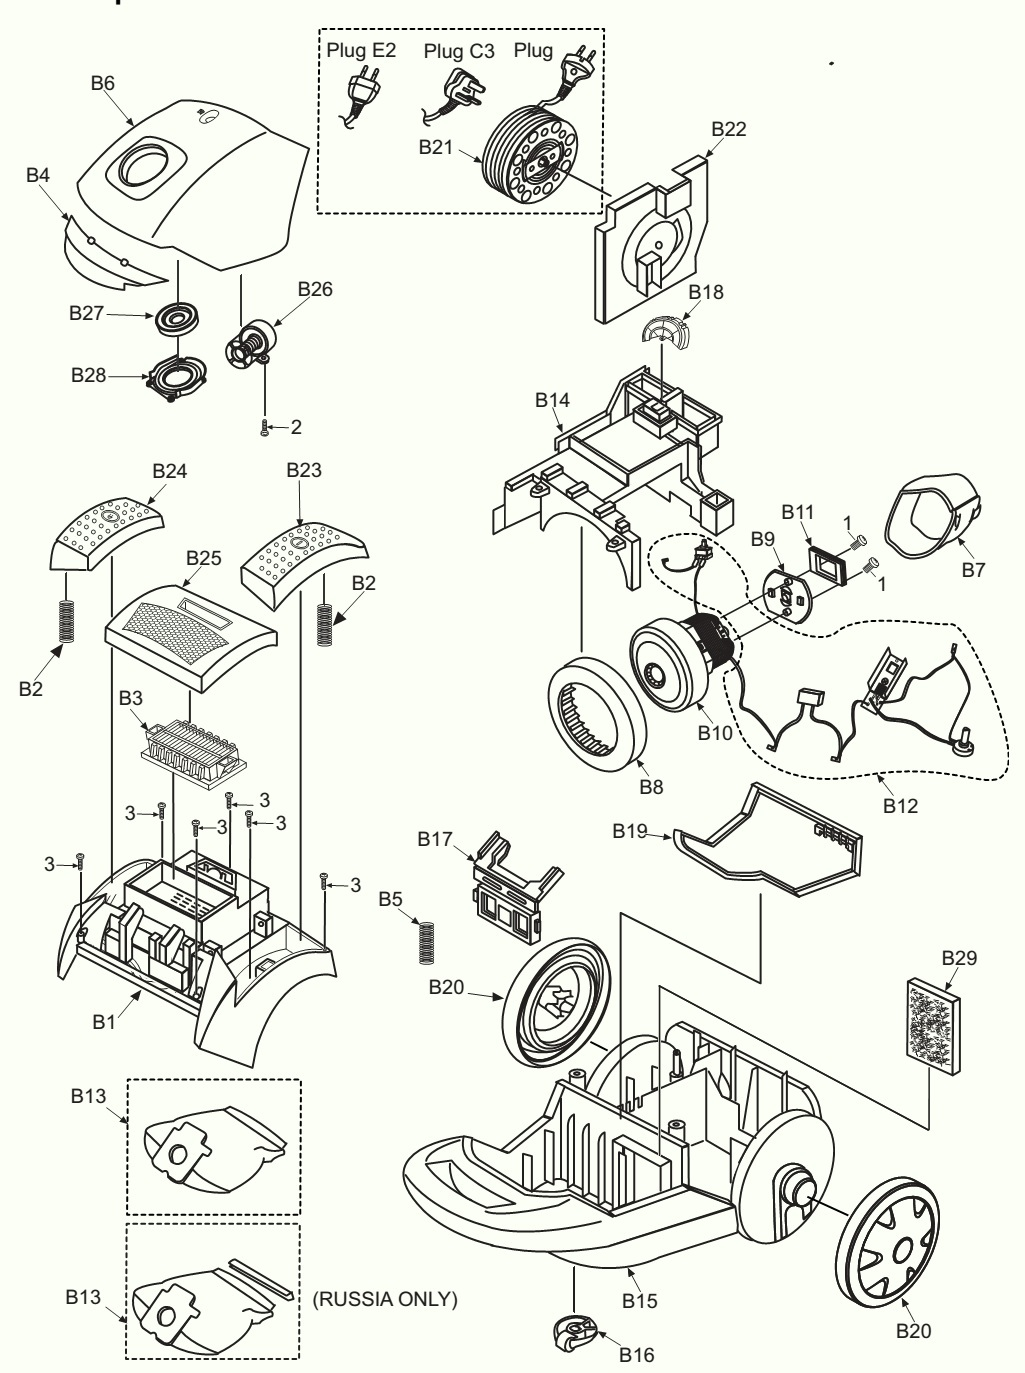 How to Disassemble Panasonic Vacuum Cleaner MCCG524WG43